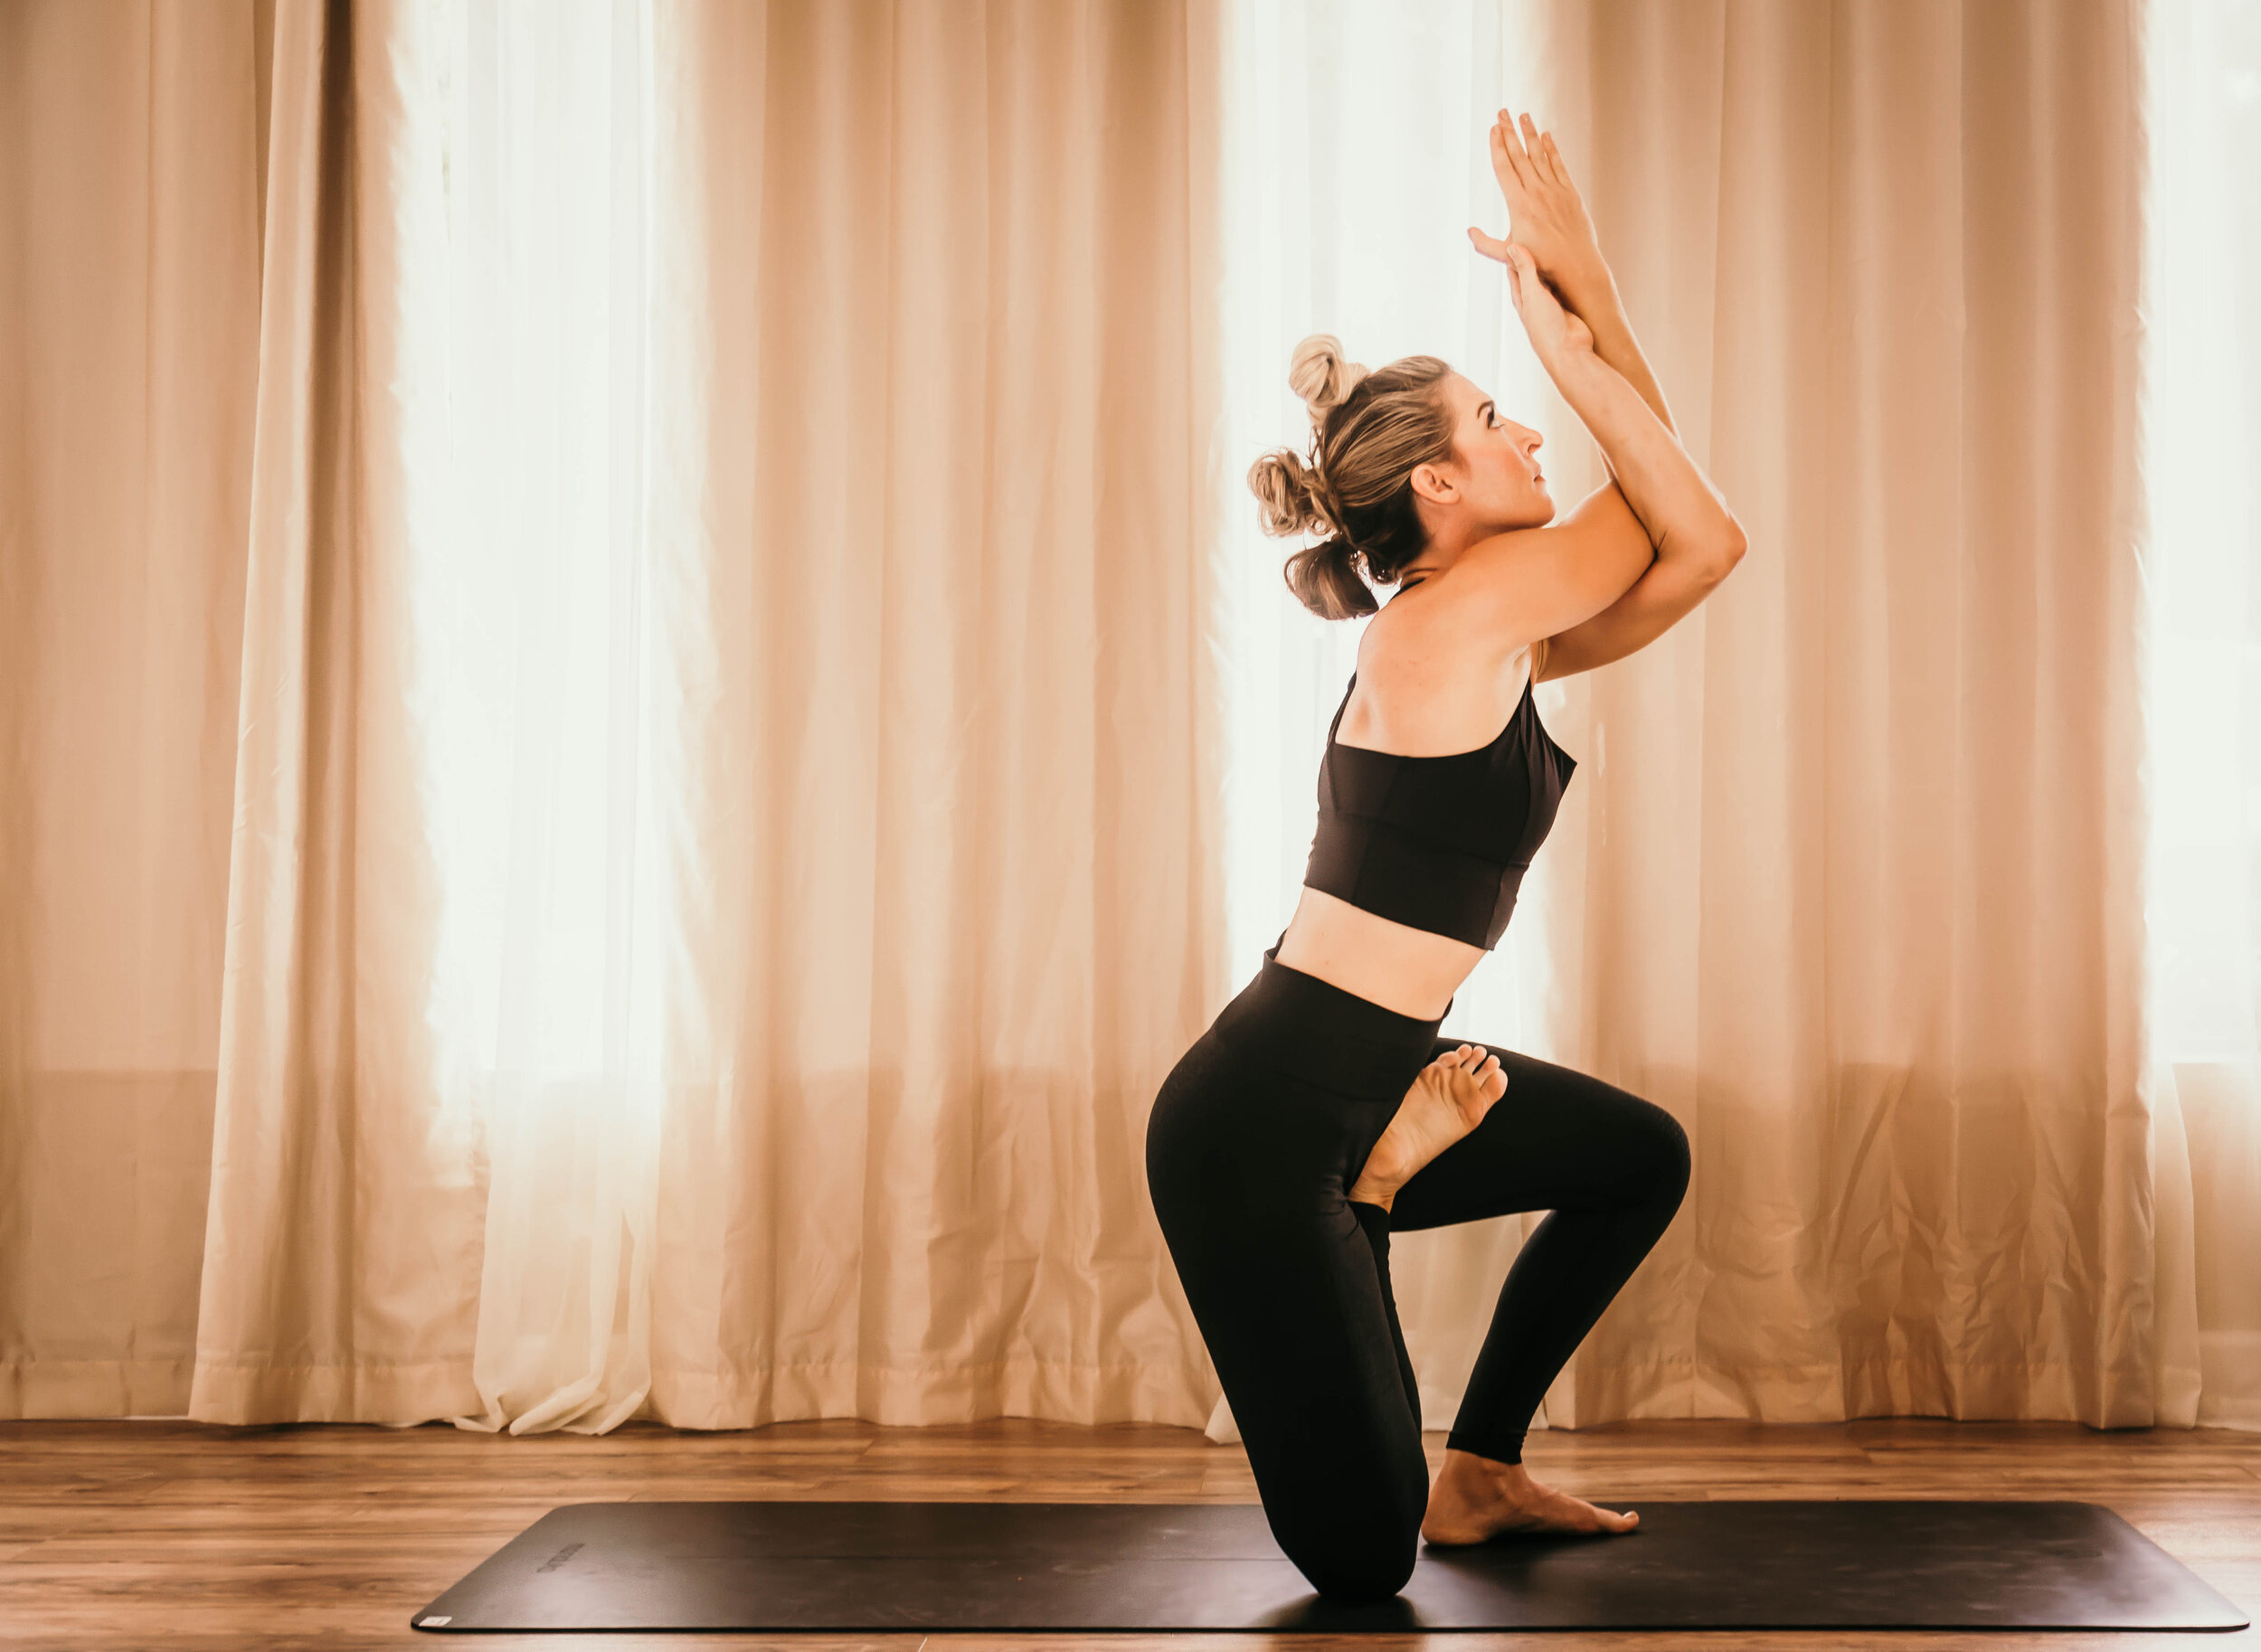 Personalized Sessions - Personal fitness training, private yoga sessions, meditation, breath work, sound healing, & mind-body wellness coaching.